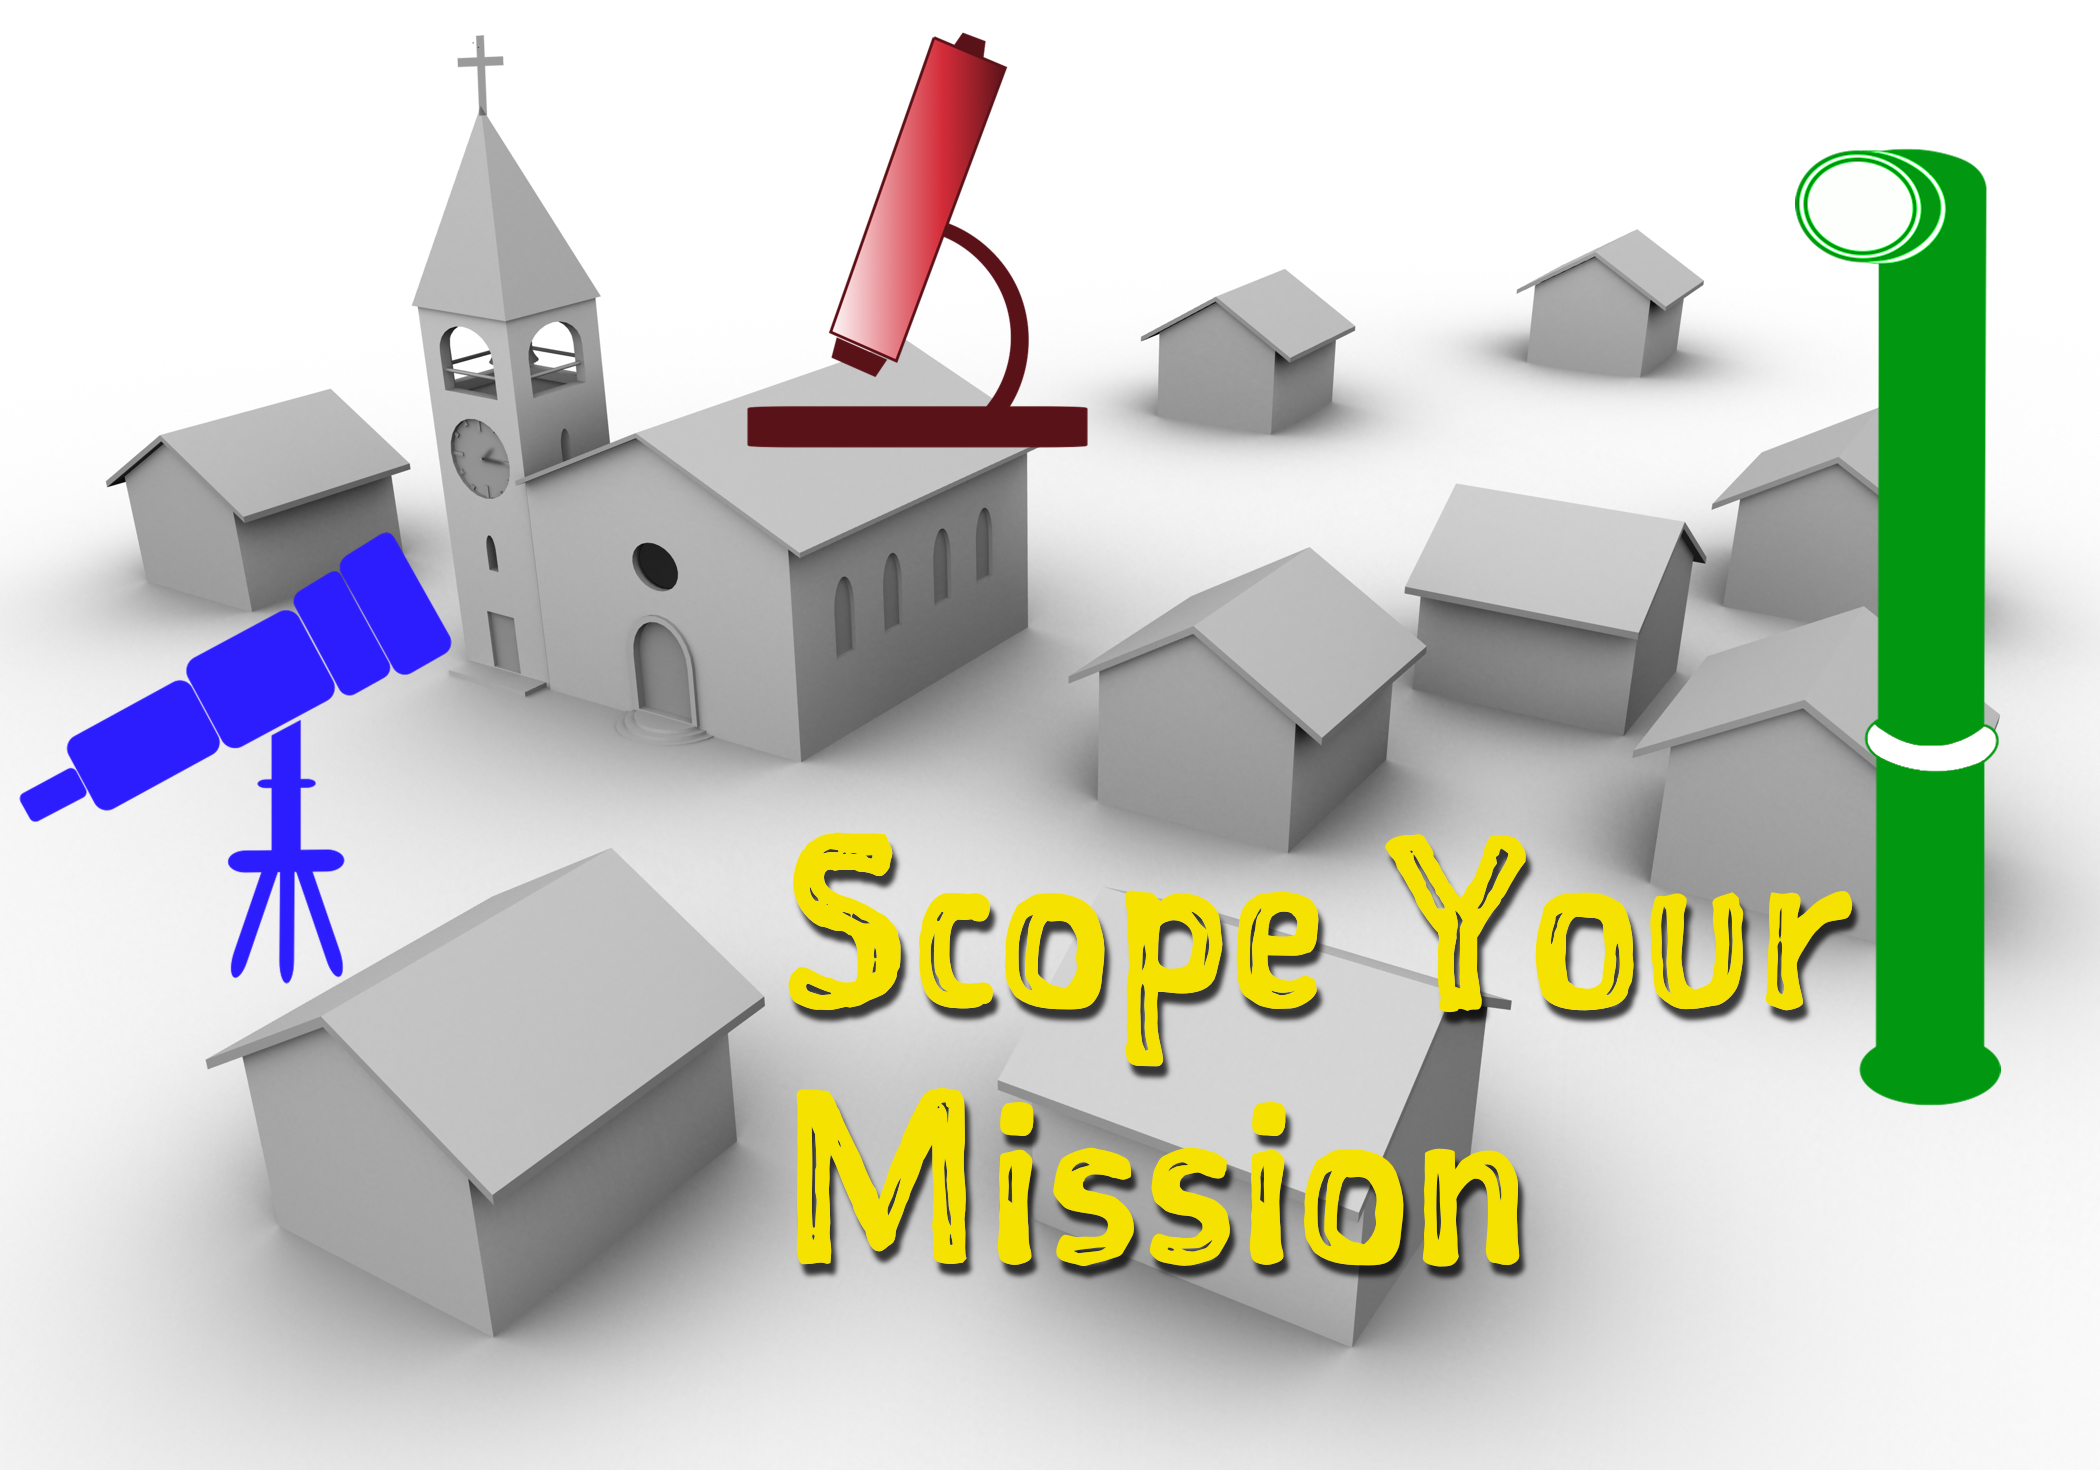 Use your Mission Telescope, Periscope, and Microscope.